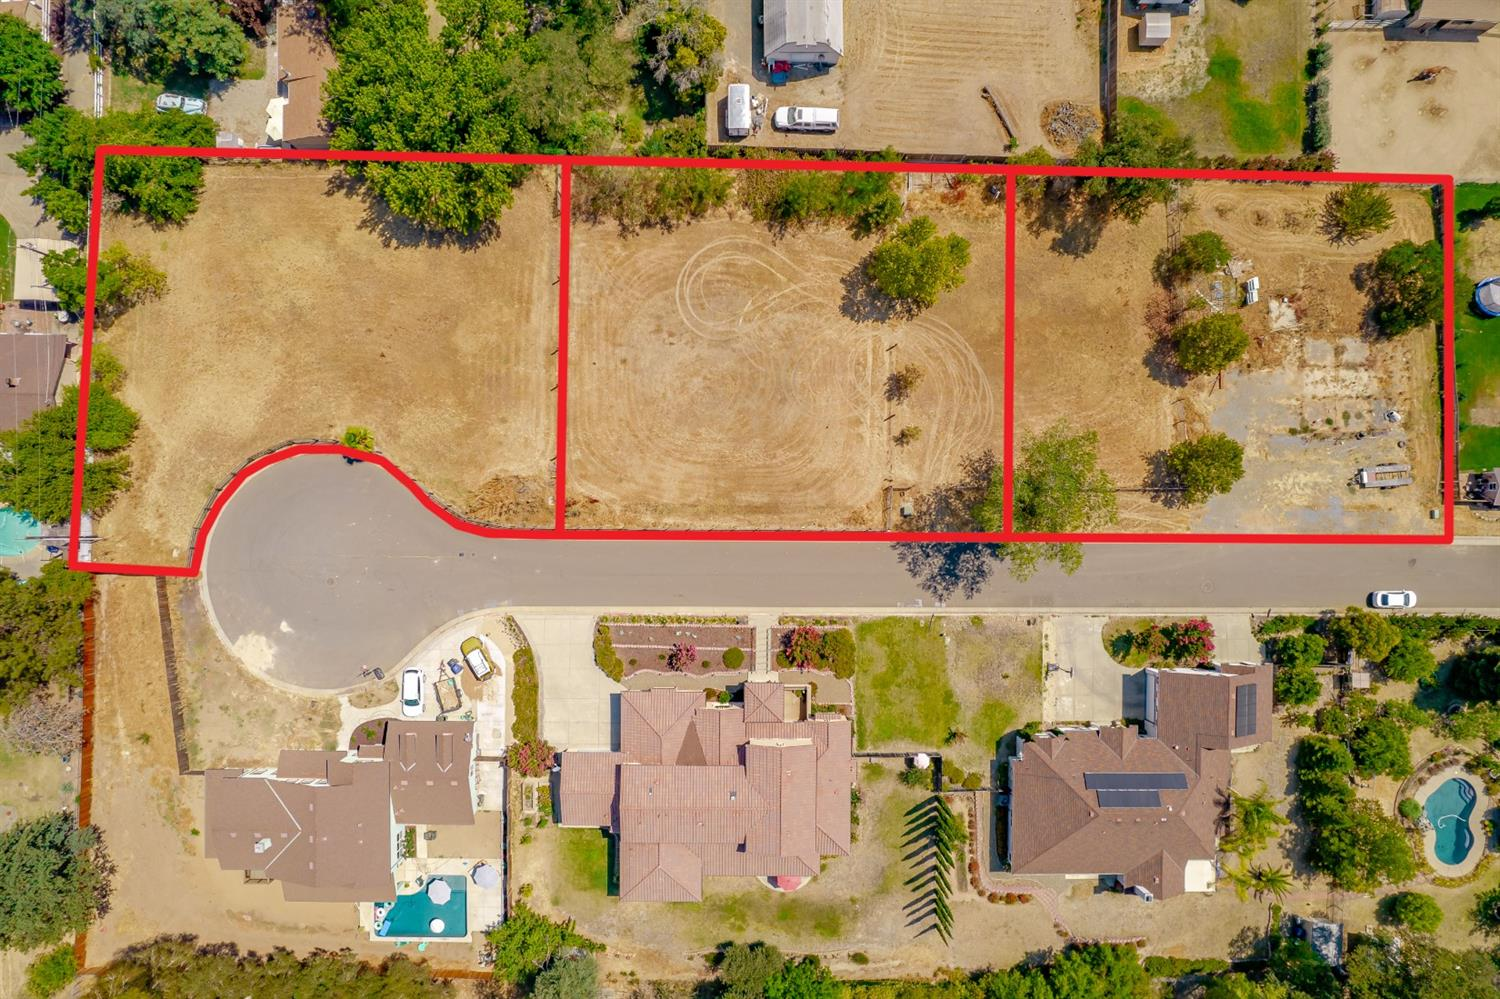 Beautiful HALF ACRE lot in Orangevale on a Private lane. Build your dream home along with a Guest house and still have plenty of space for other potential. ALL PUBLIC UTITLITES. Flat useable and convenient location. Building plans may be negotiable at sale. 3 total vacant parcels may be available. Go show before its gone, land like this does not come around often, don't miss your opportunity.